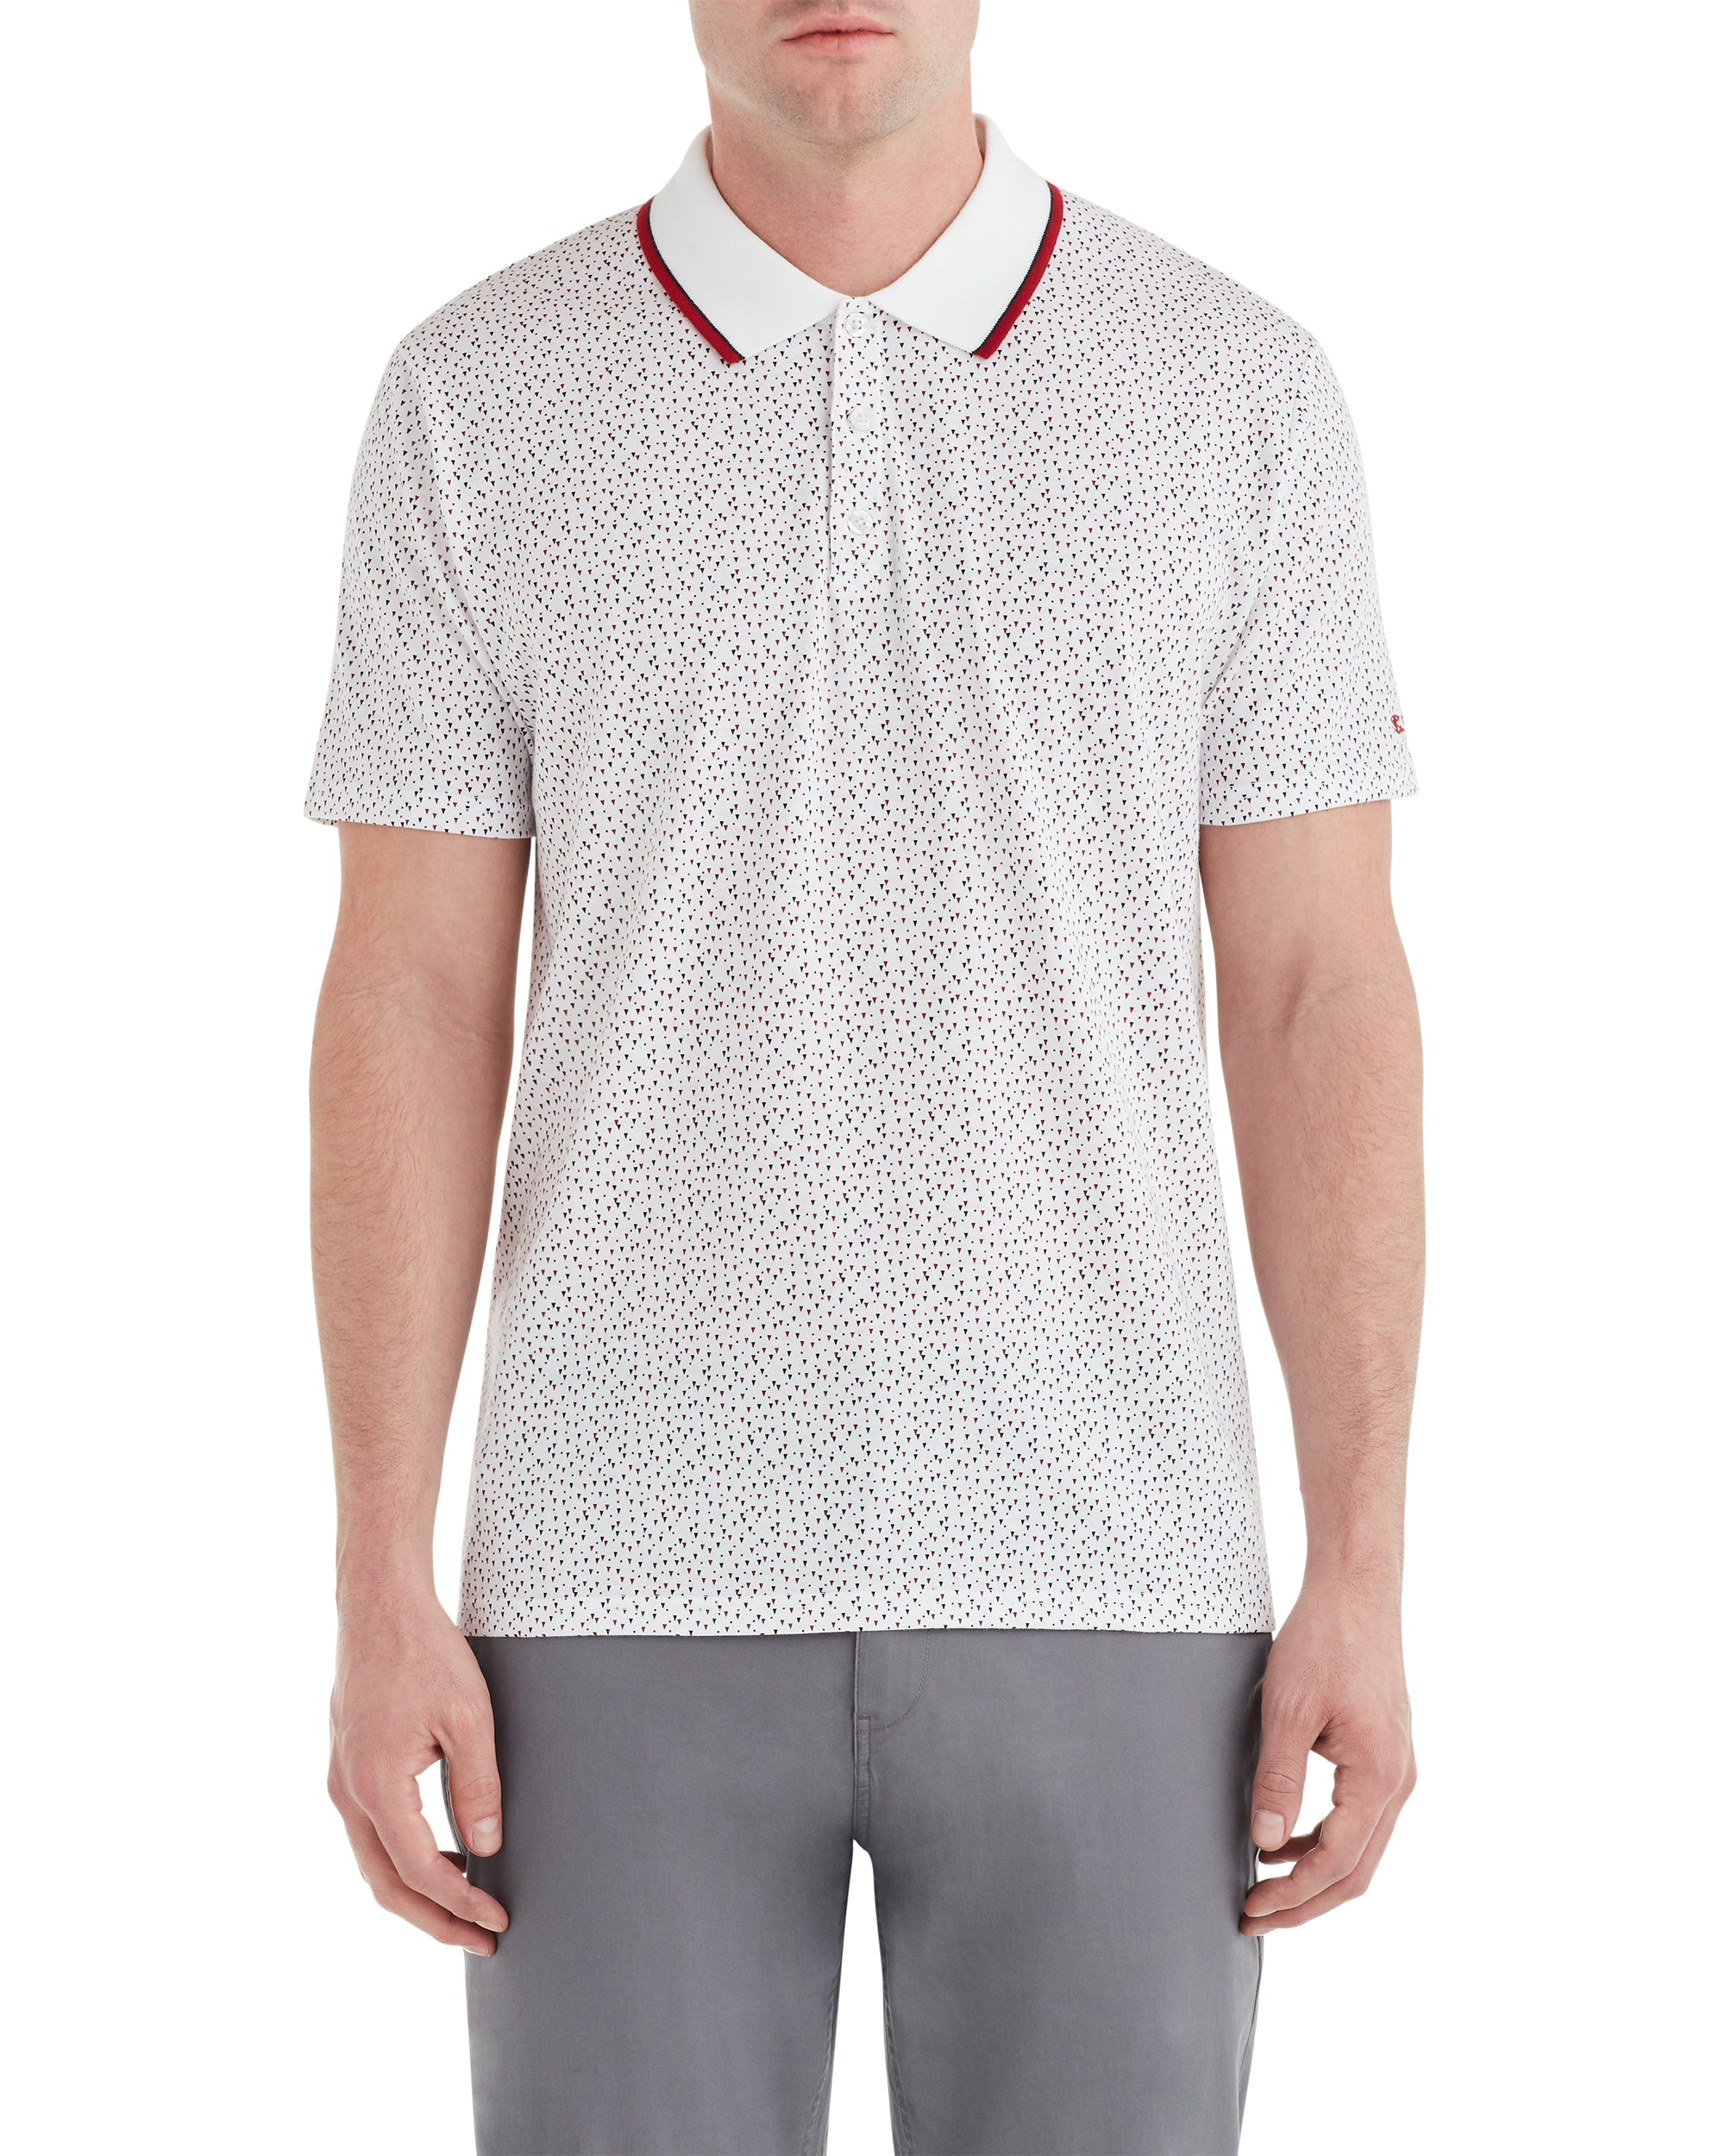 Conversational Print Polo Shirt - White